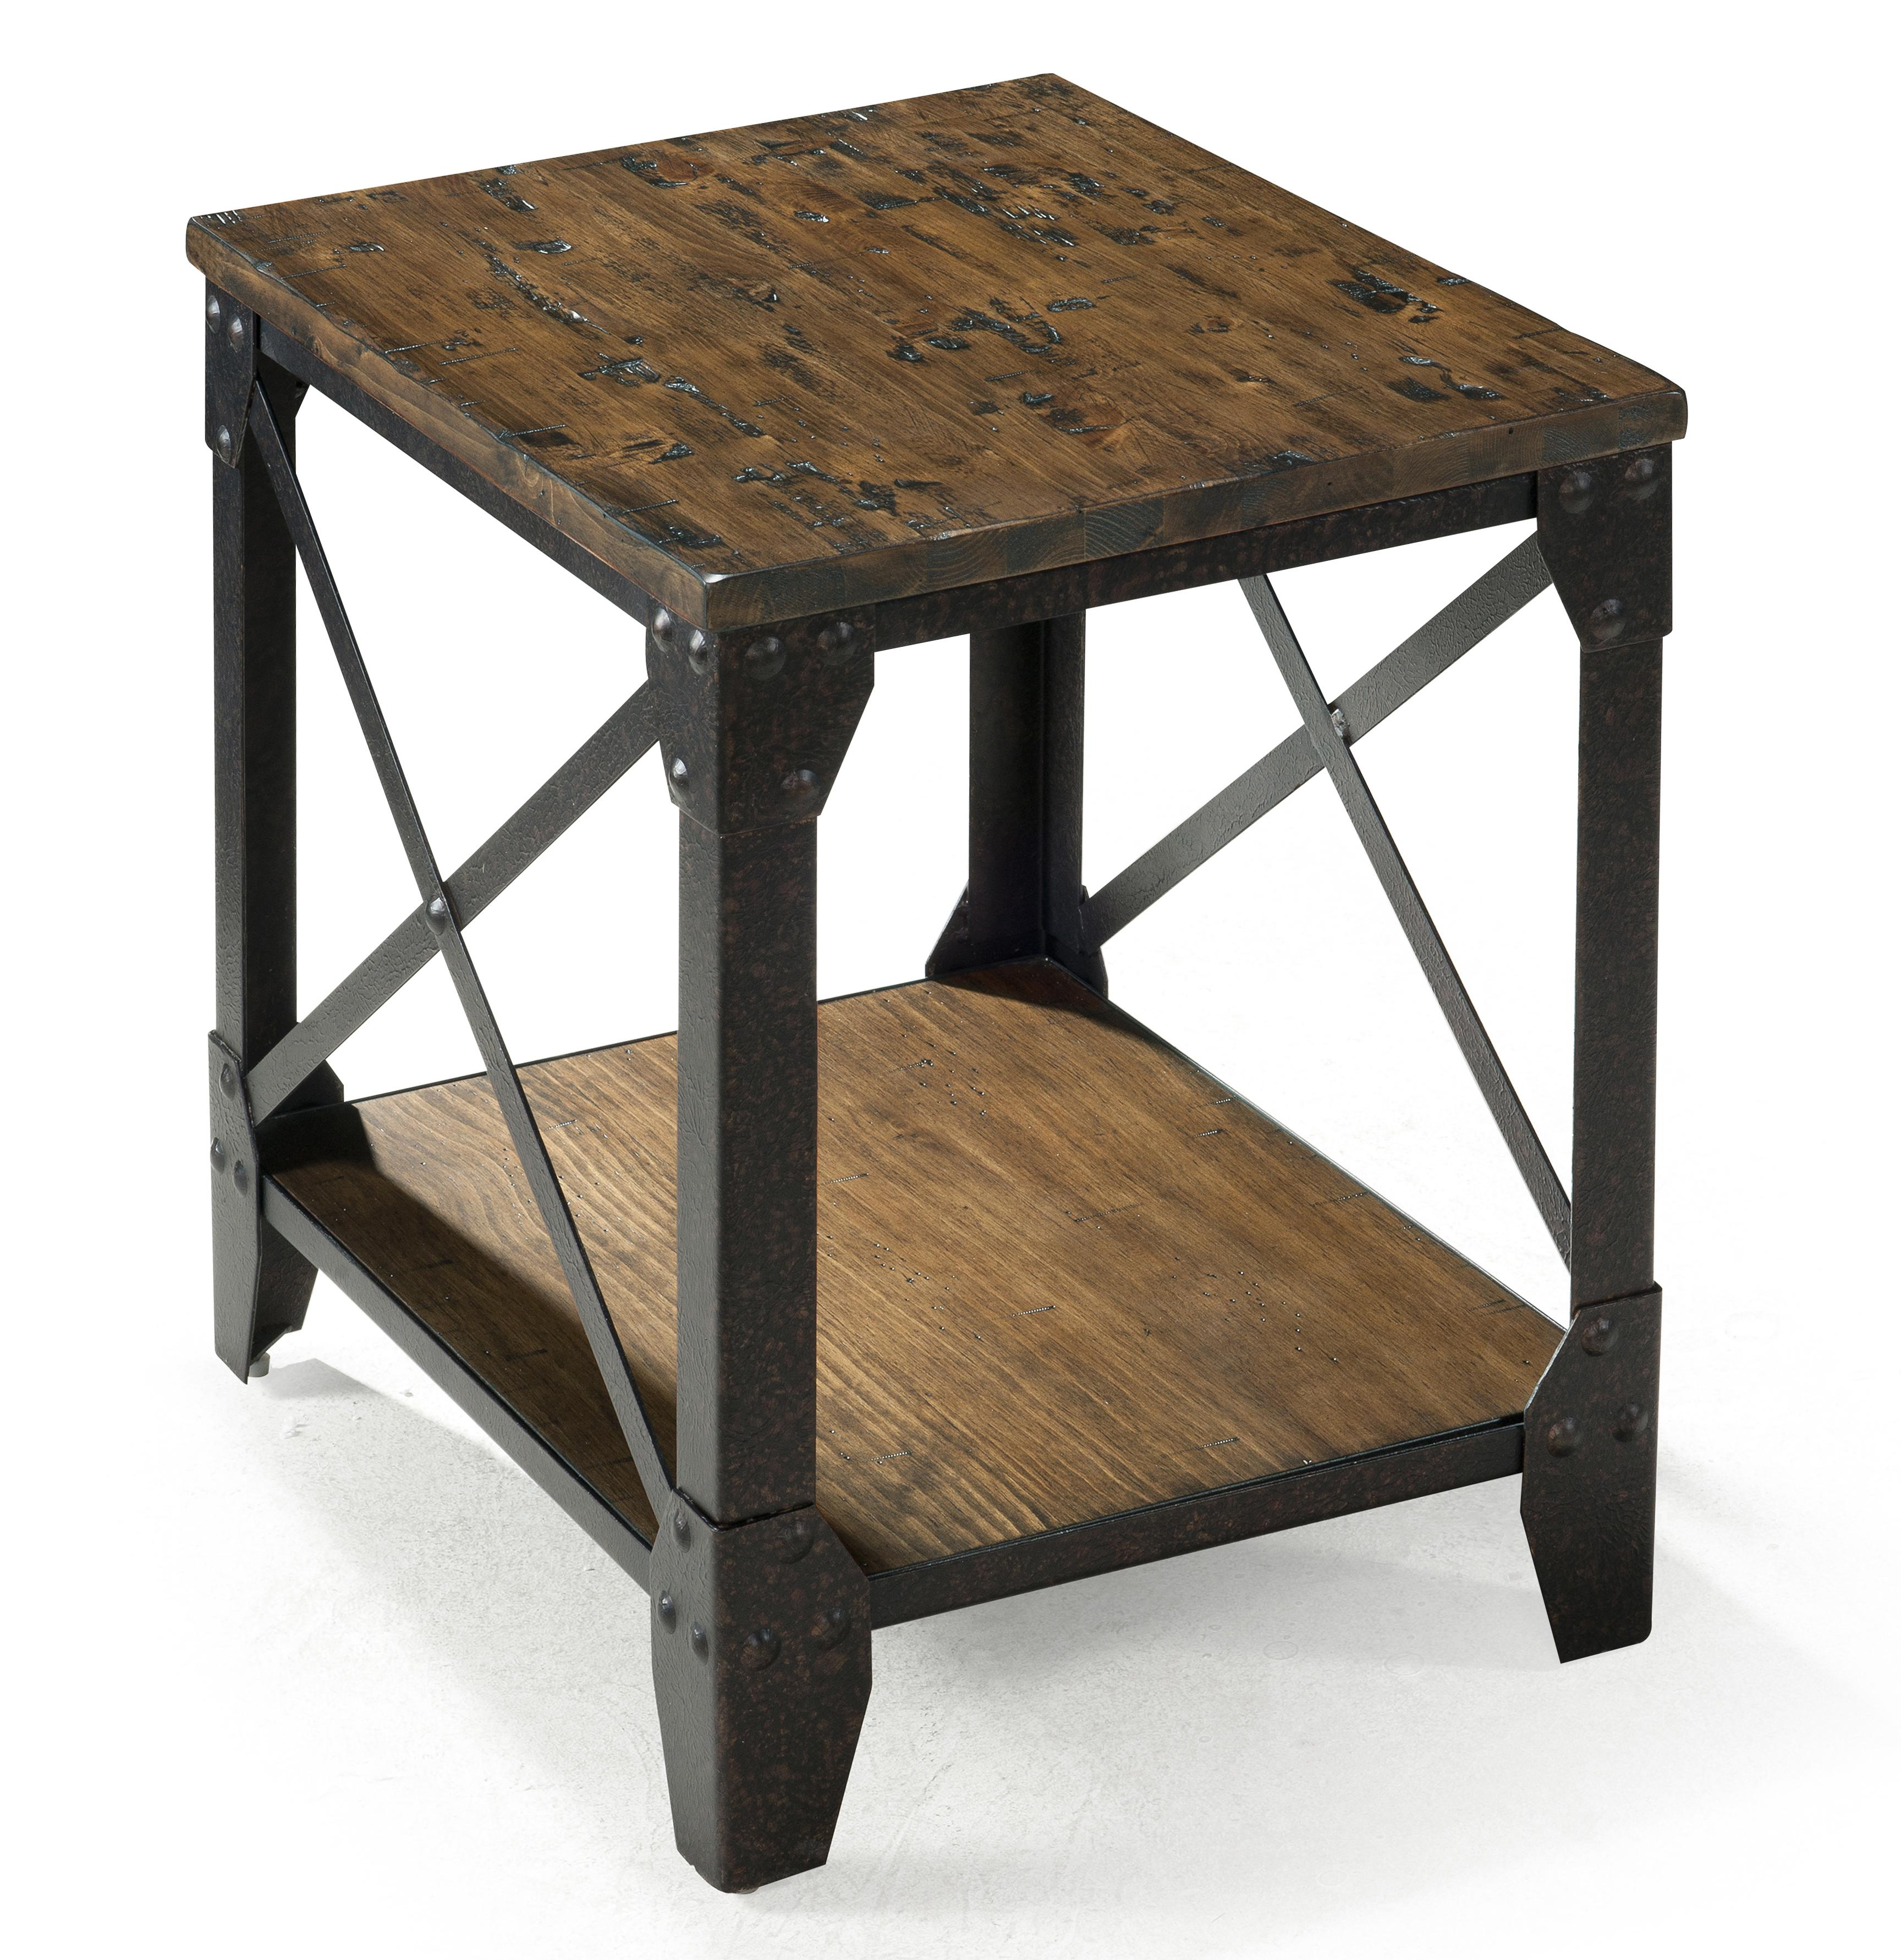 Small Rectangular End Table with Rustic Iron Legs by Magnussen